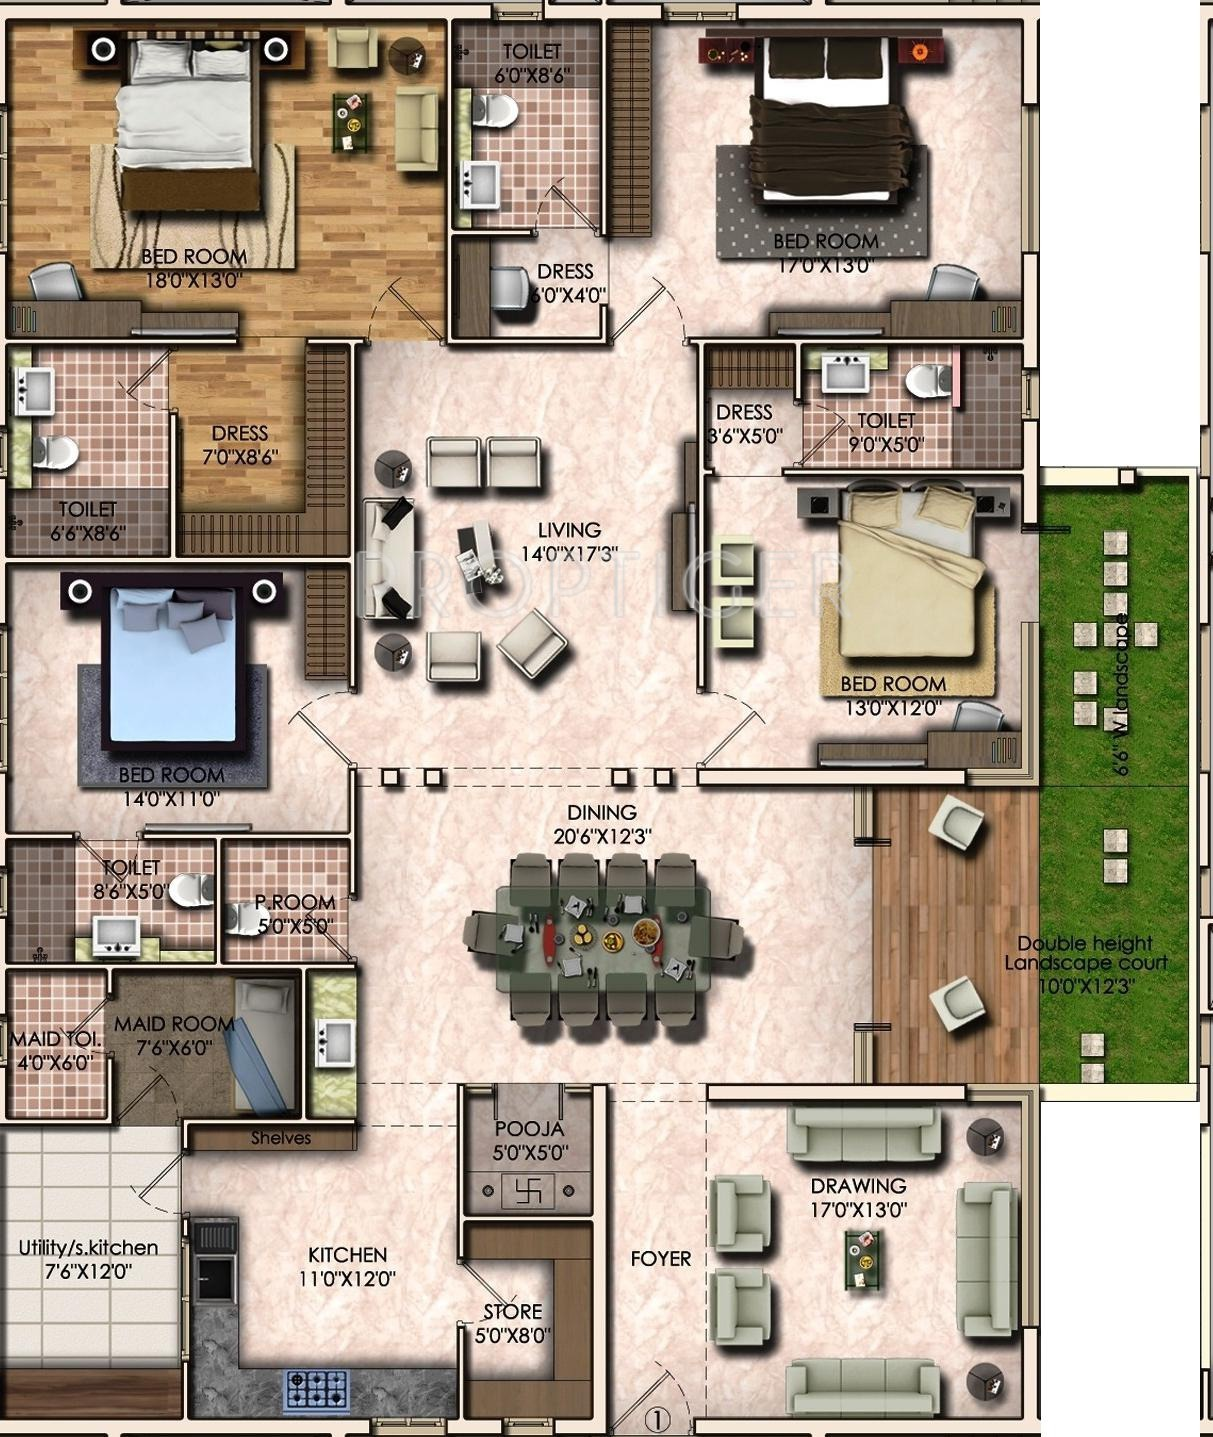 3400 sq ft 4 bhk floor plan 4bhk 4t 3400 sq ft image for 3400 square feet house plan